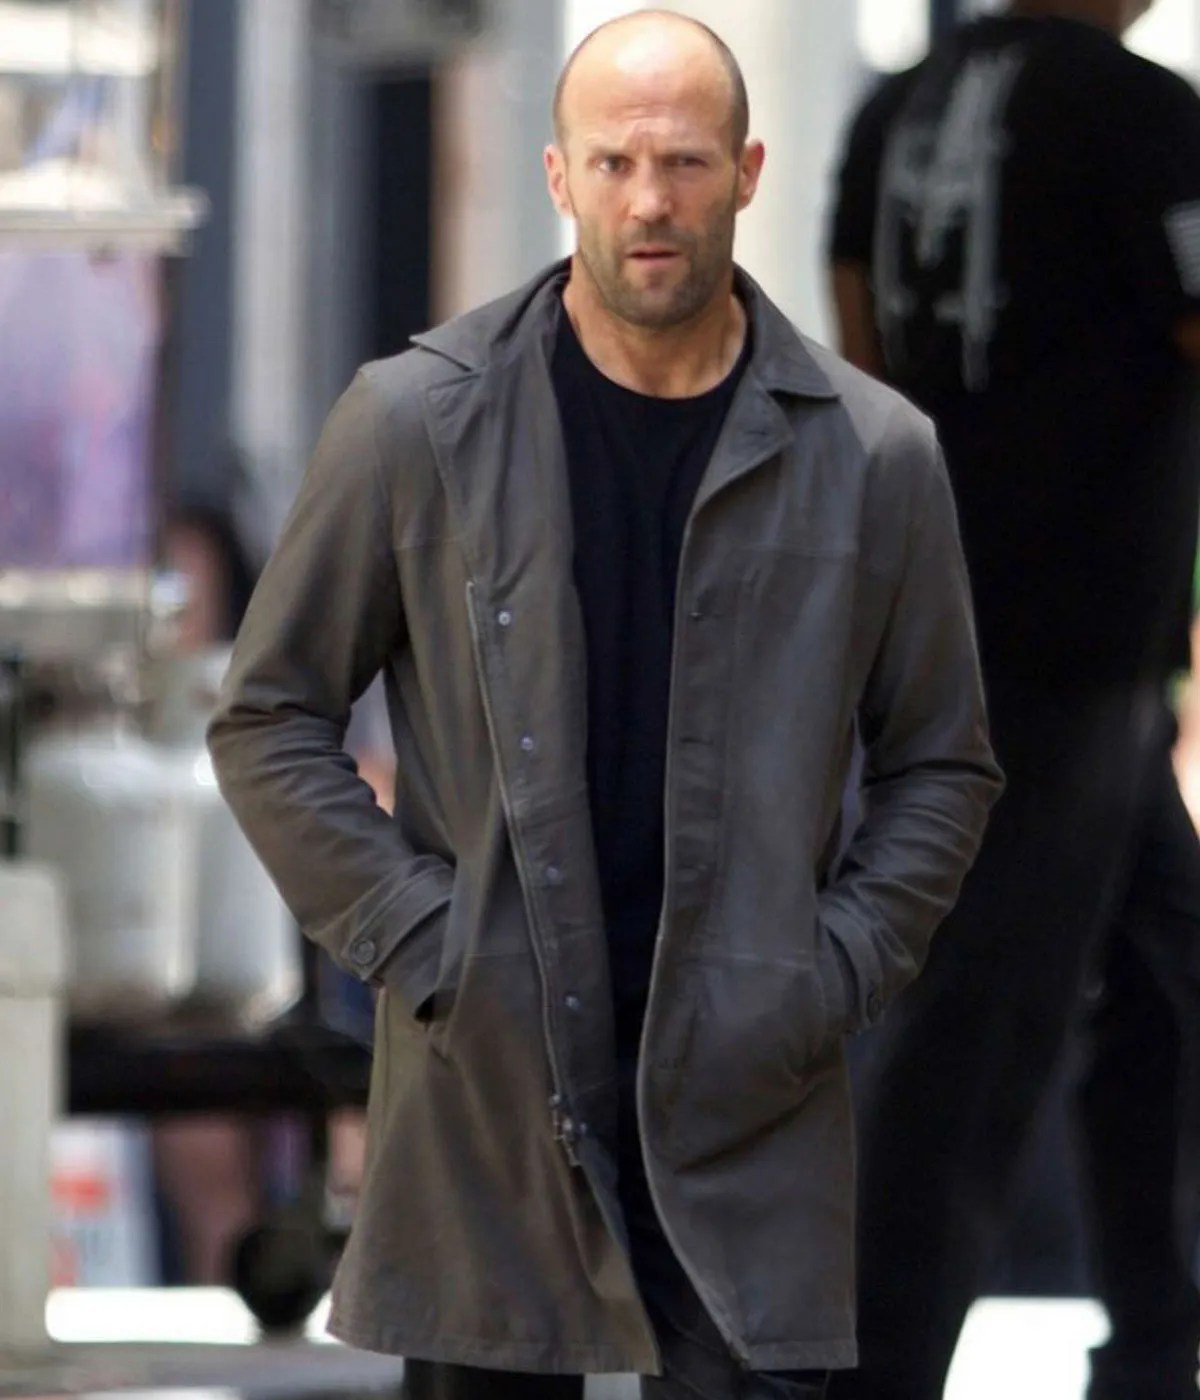 fast-and-furious-grey-coat